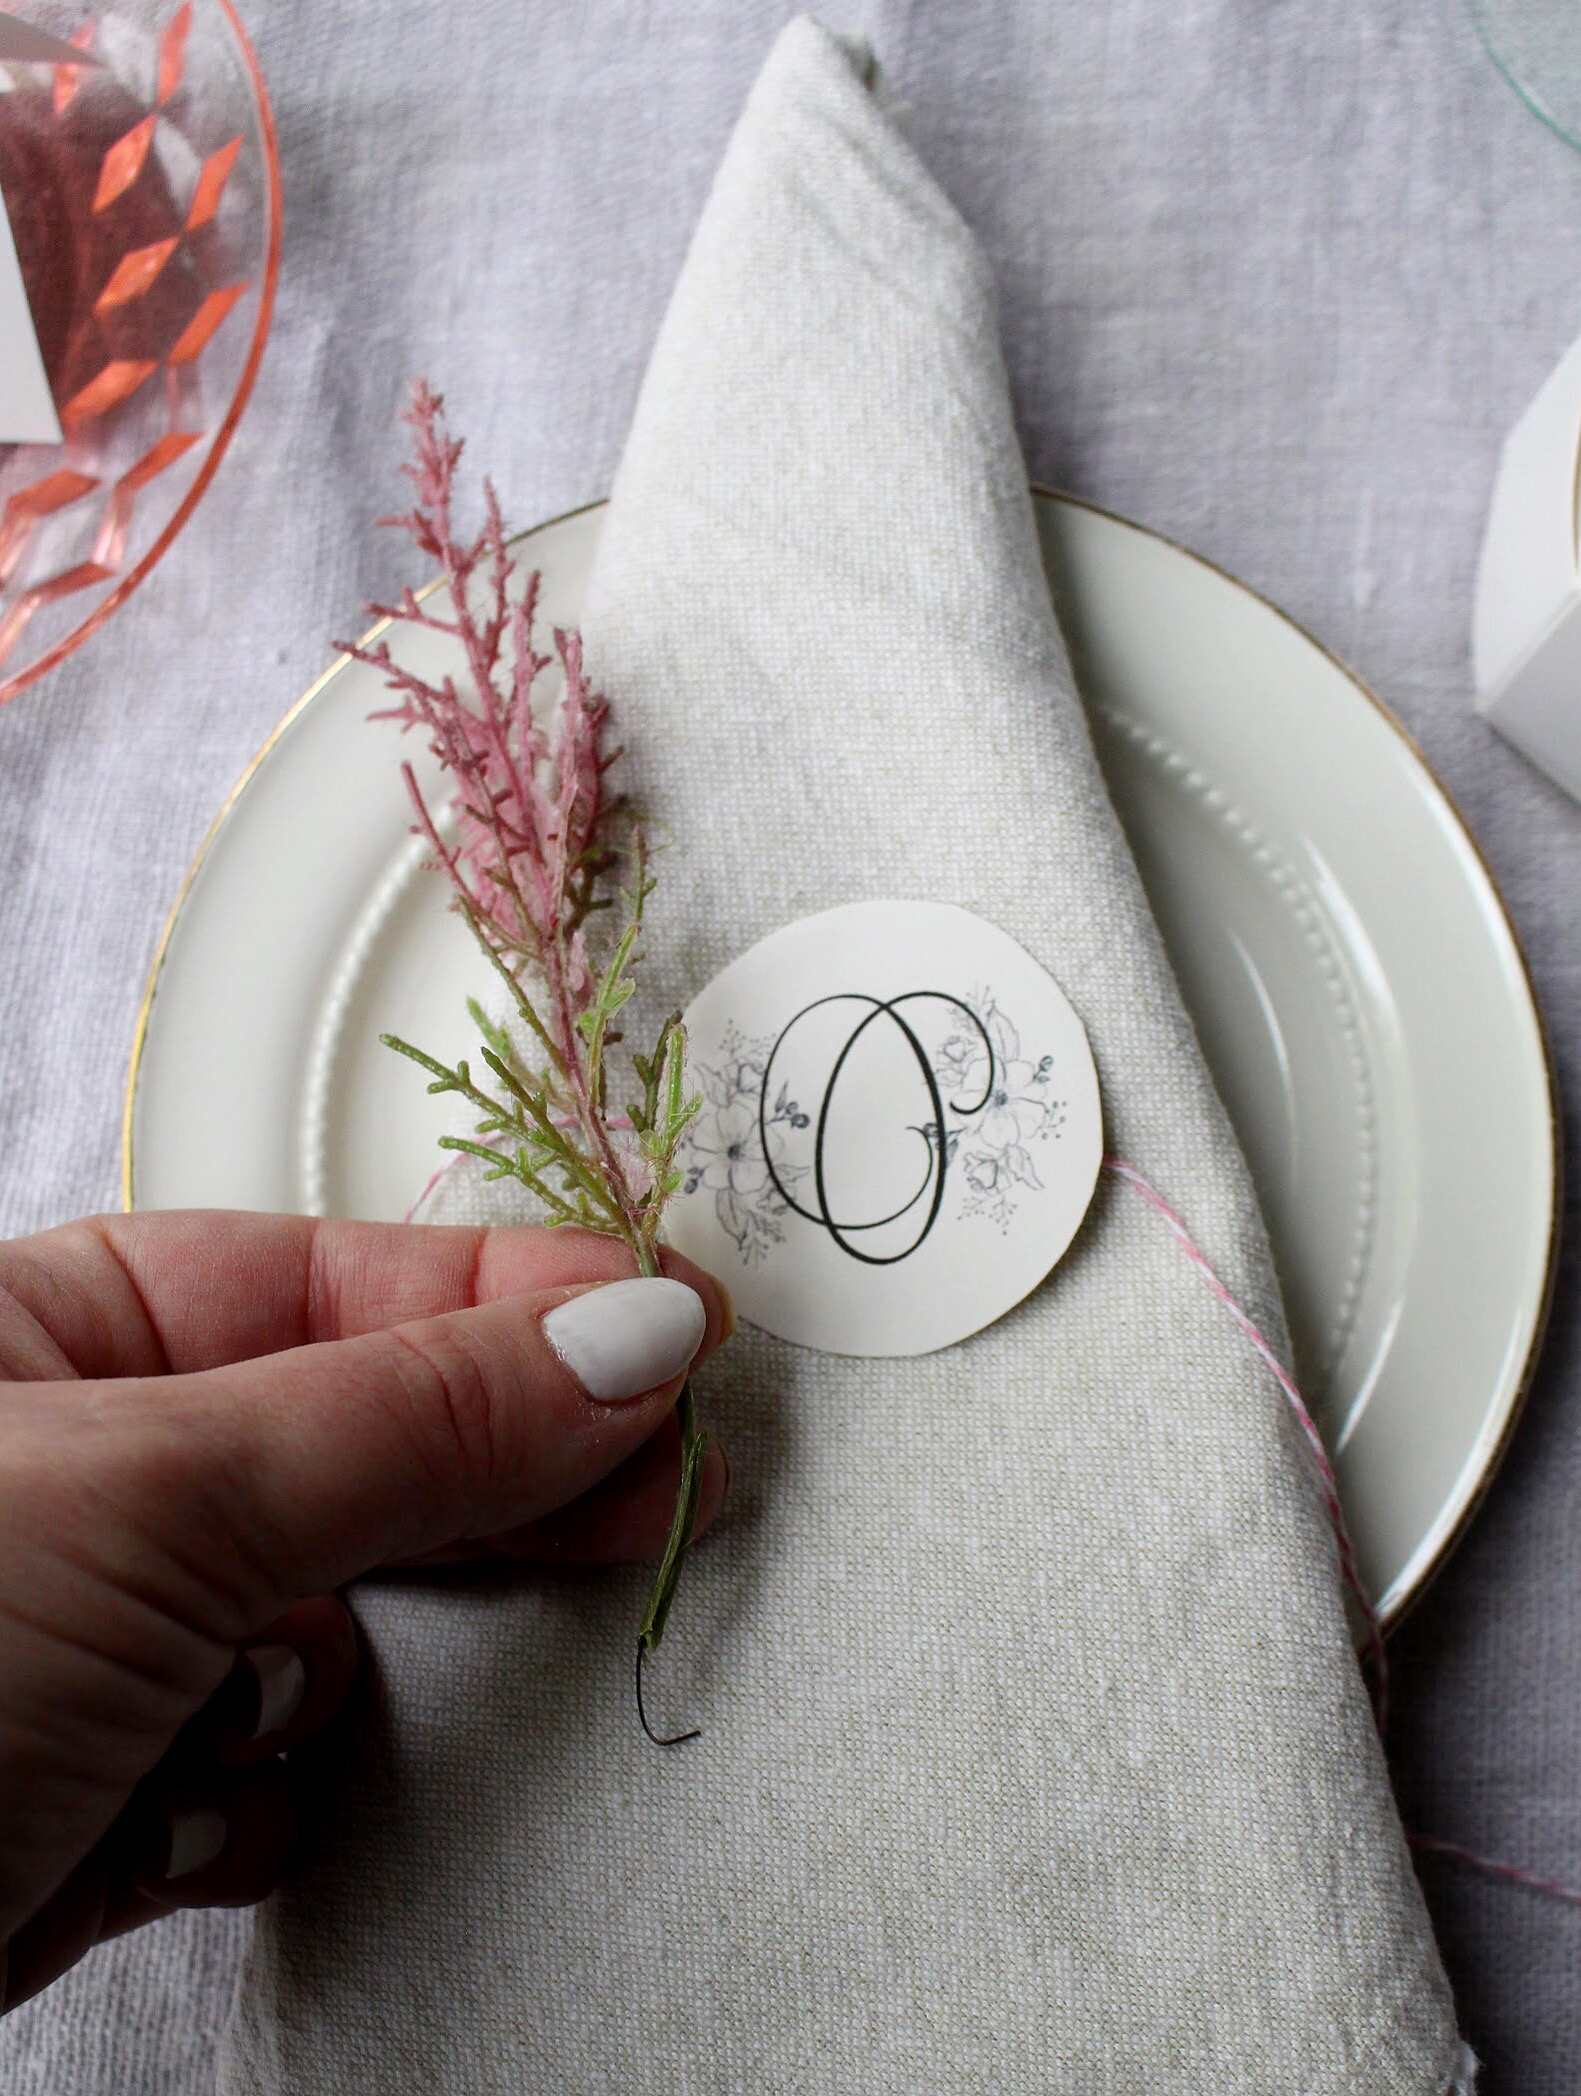 Use wedding printable downloads for your Mother's Day table Decor